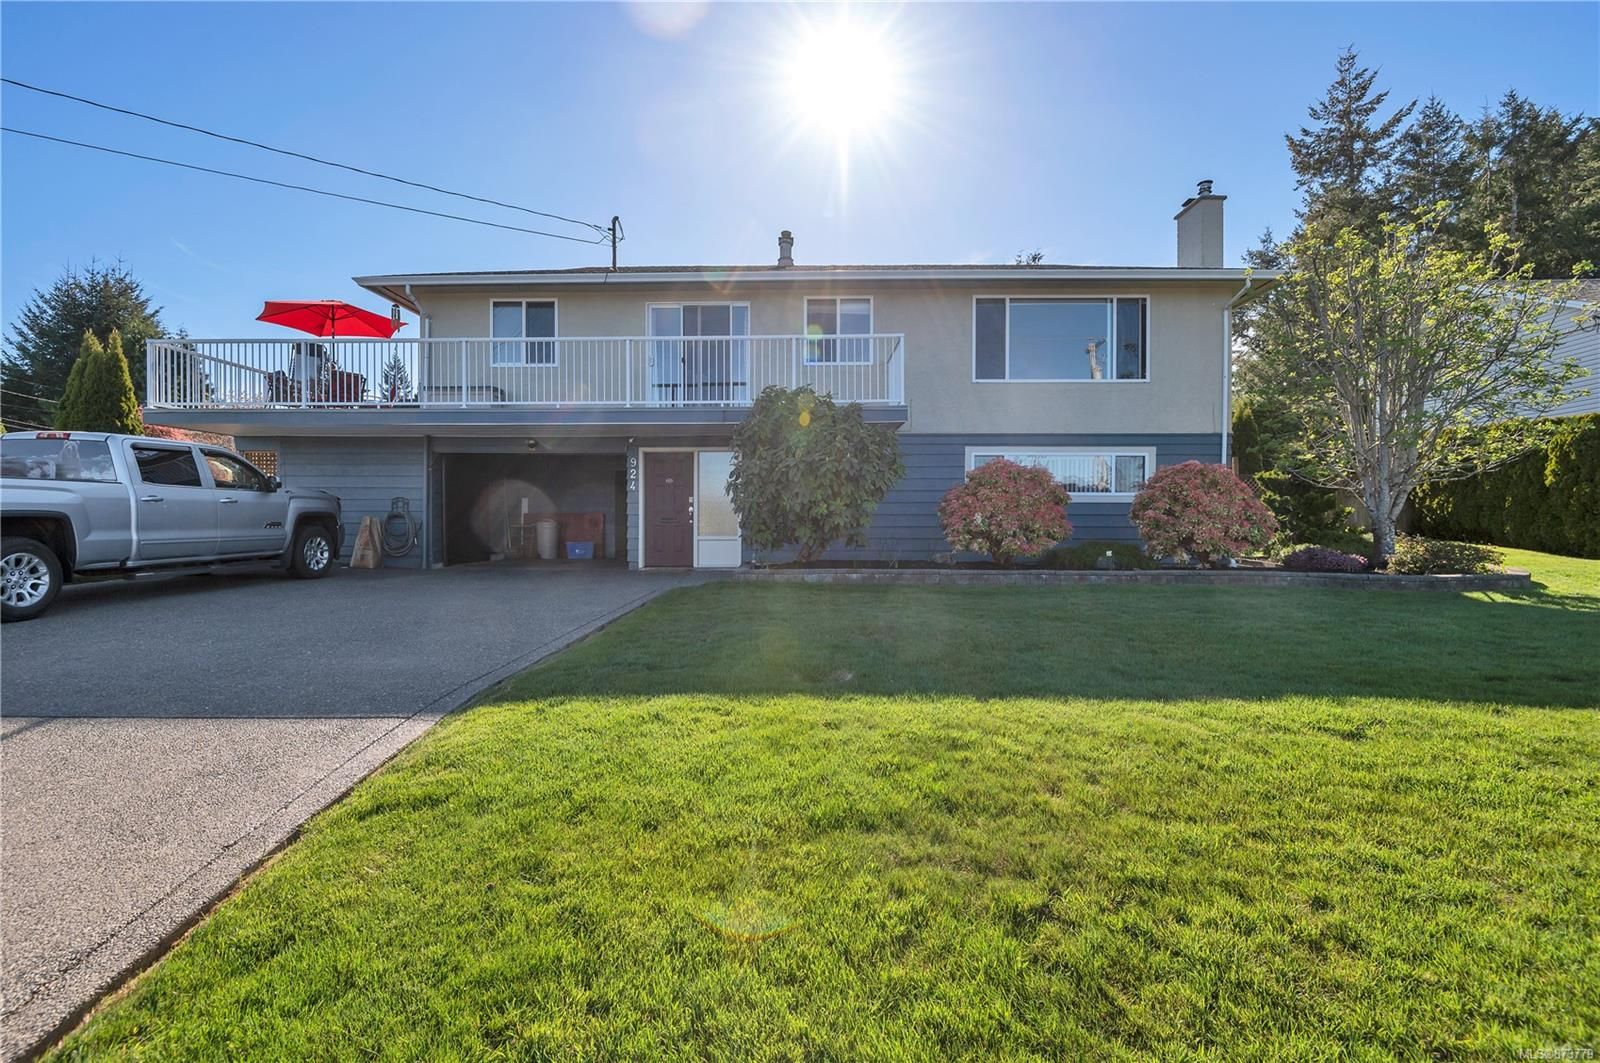 Main Photo: 924 Galerno Rd in : CR Campbell River Central House for sale (Campbell River)  : MLS®# 873779